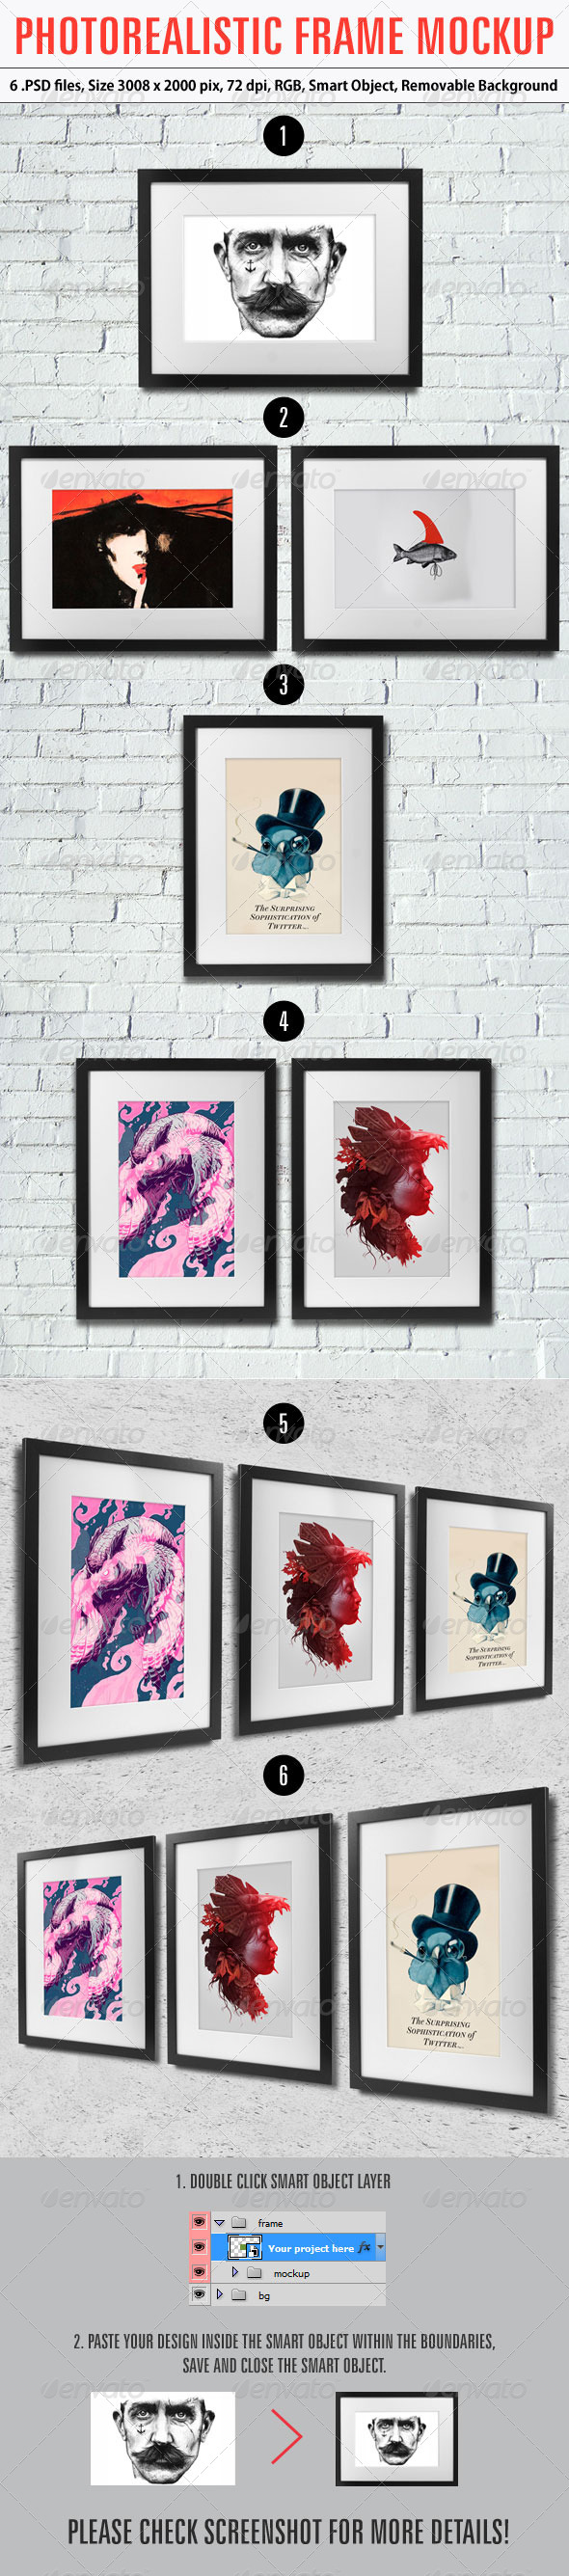 GraphicRiver Photorealistic Frame Mockup 6208915